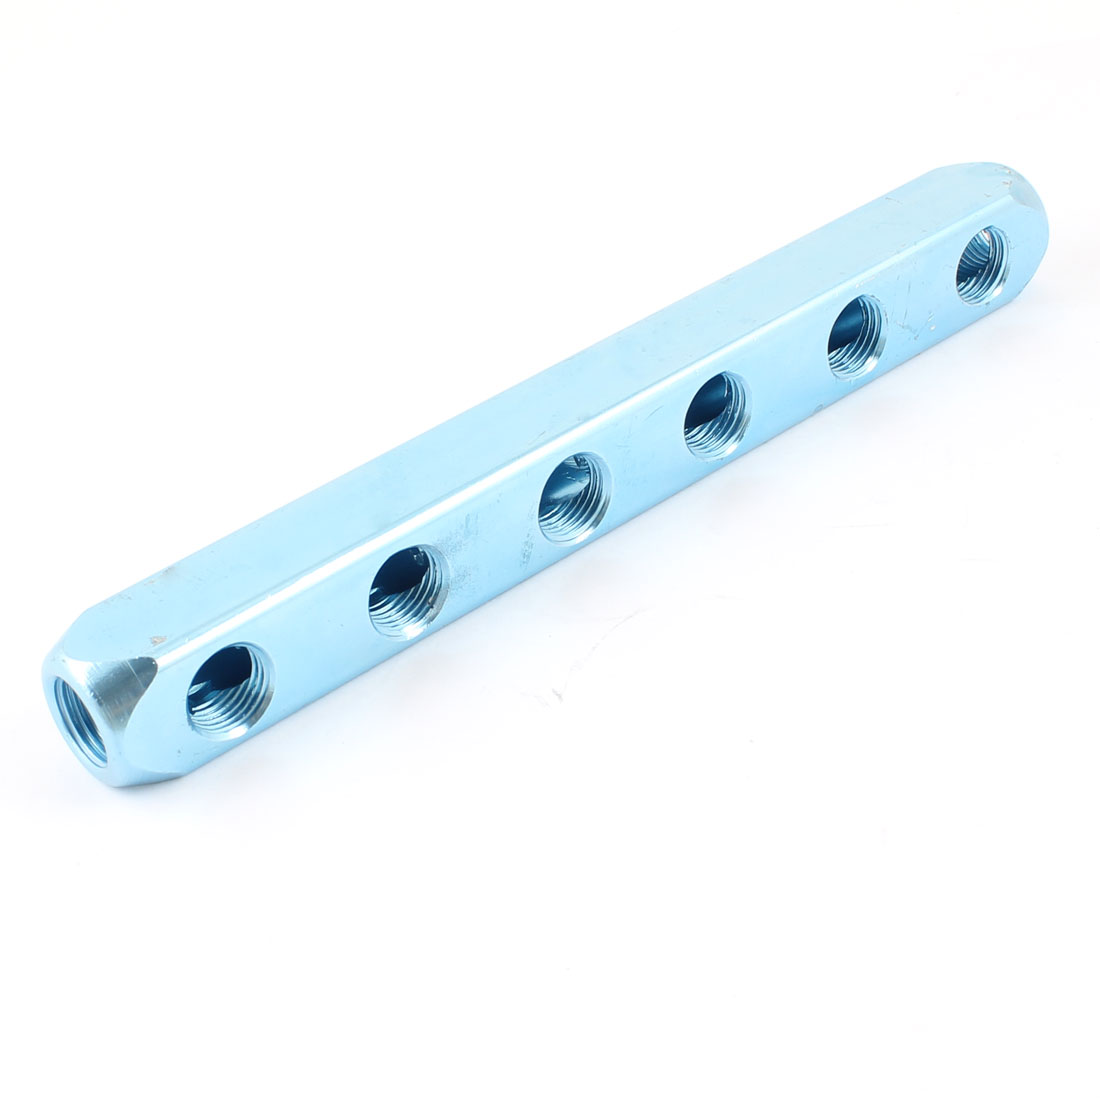 Aluminum Quick Connect 6 Outlet Air Manifold Splitter Teal Blue